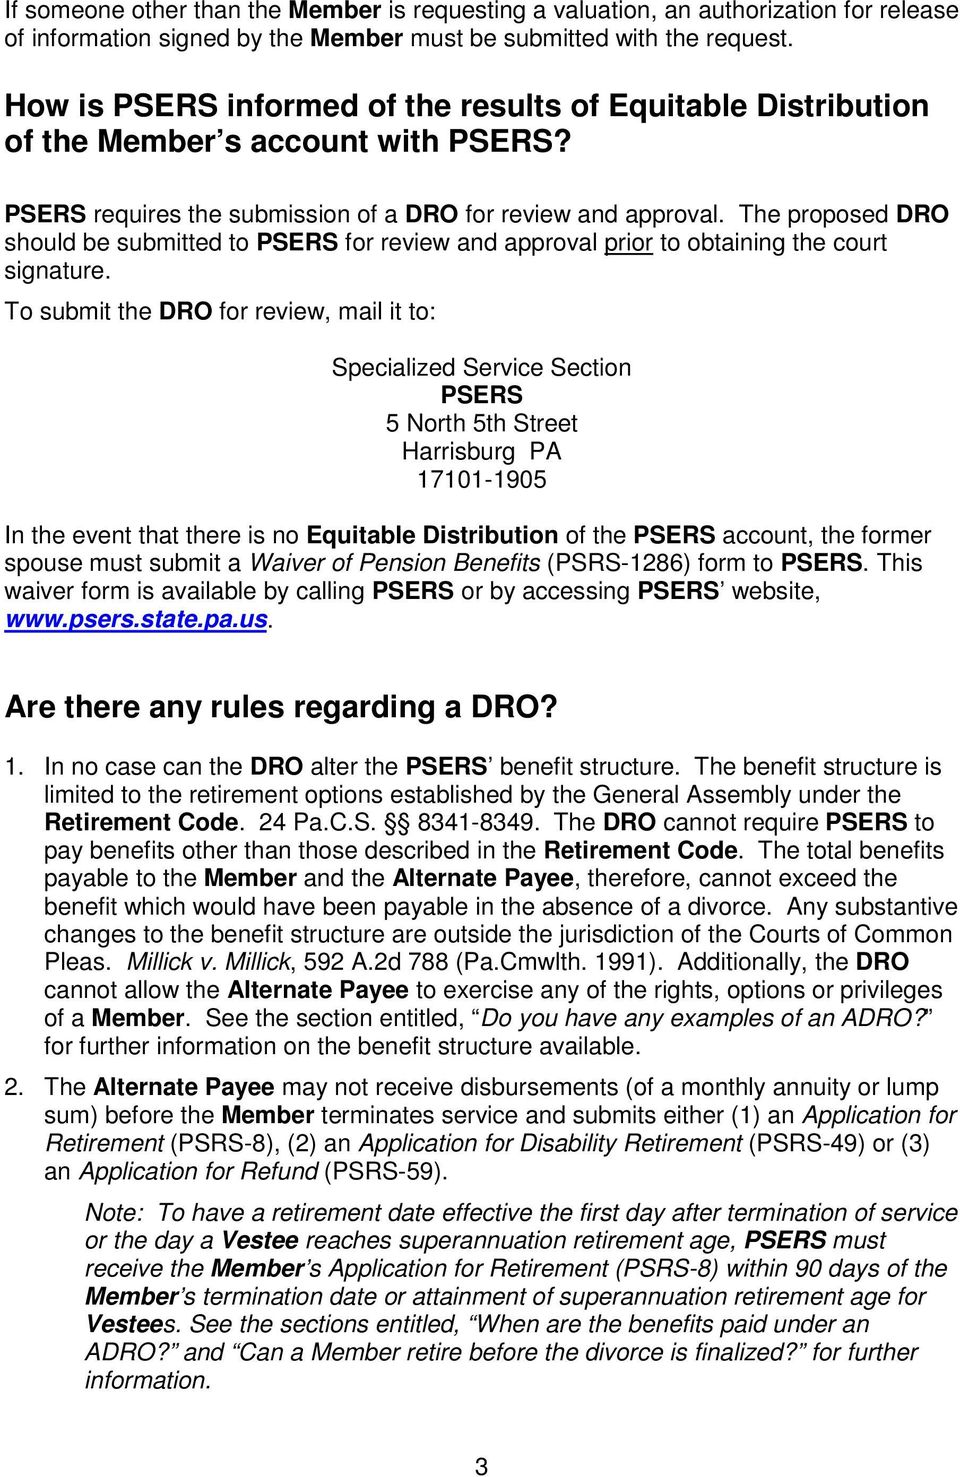 The proposed DRO should be submitted to PSERS for review and approval prior to obtaining the court signature.